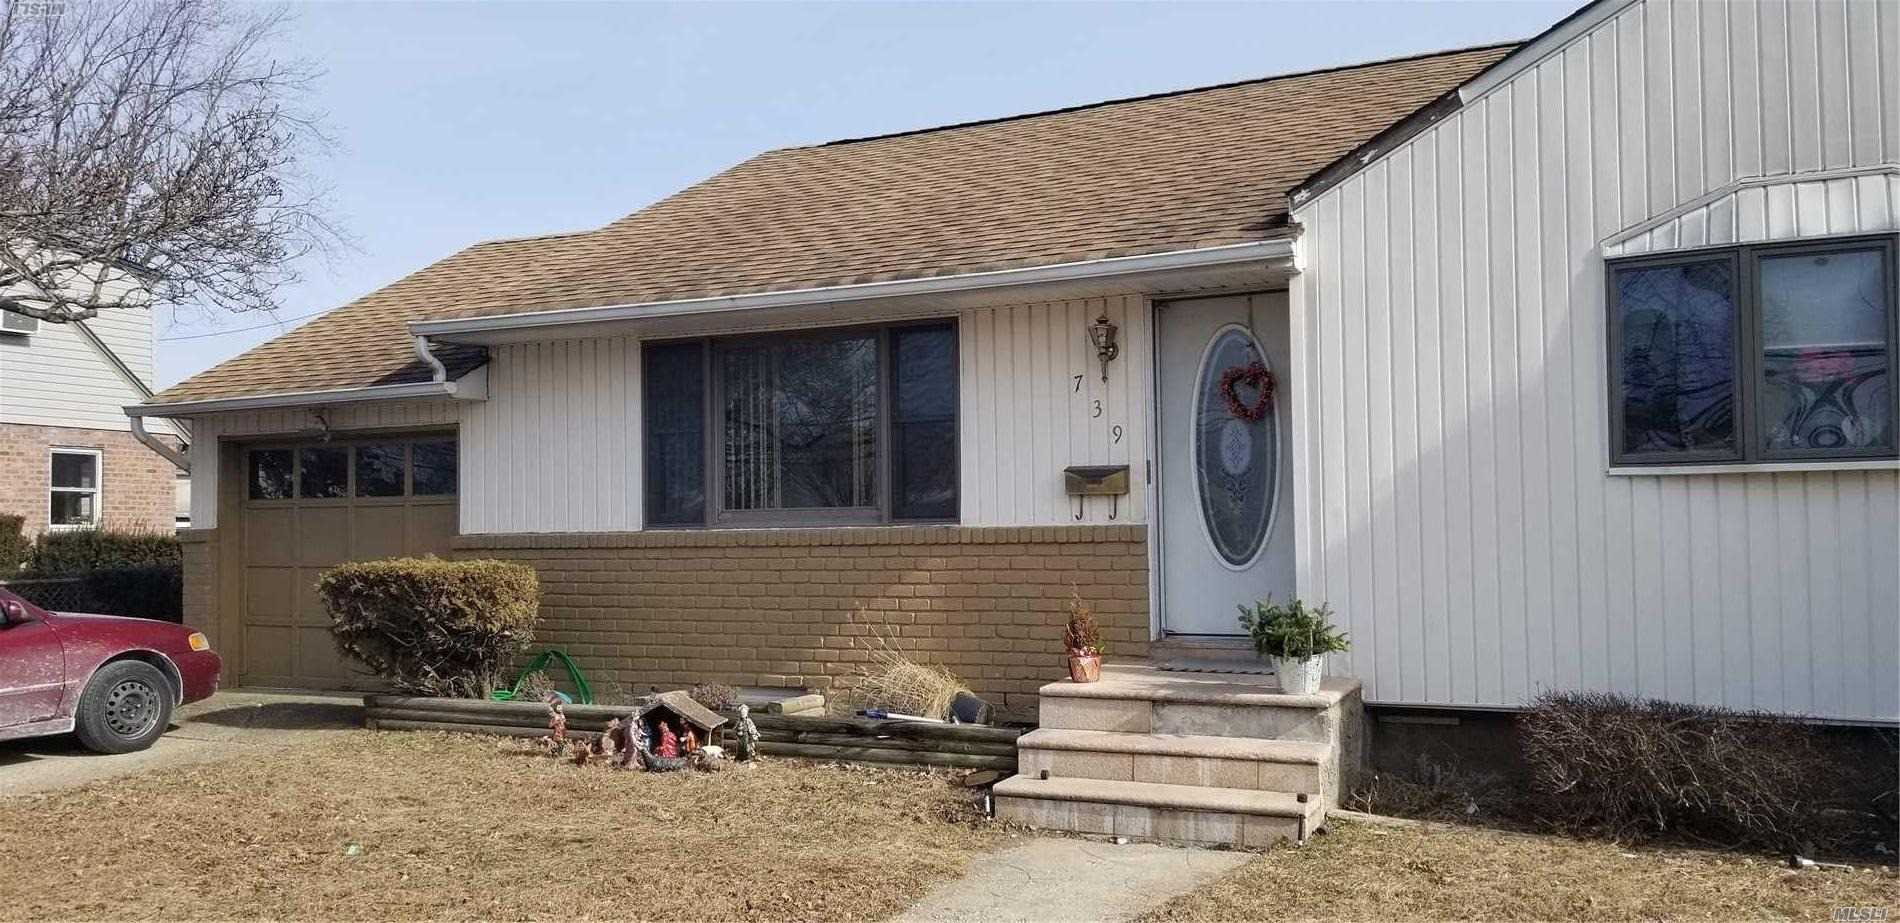 3 Bedroom Ranch, Eat In Kitchen, Living Room, Full Basement. Garage. French Doors Lead To Large Backyard. Pull Down Stairs To Attic. Nearby Major Highways, Shopping, Houses Of Worship, Bethpage State Park.Short Sale